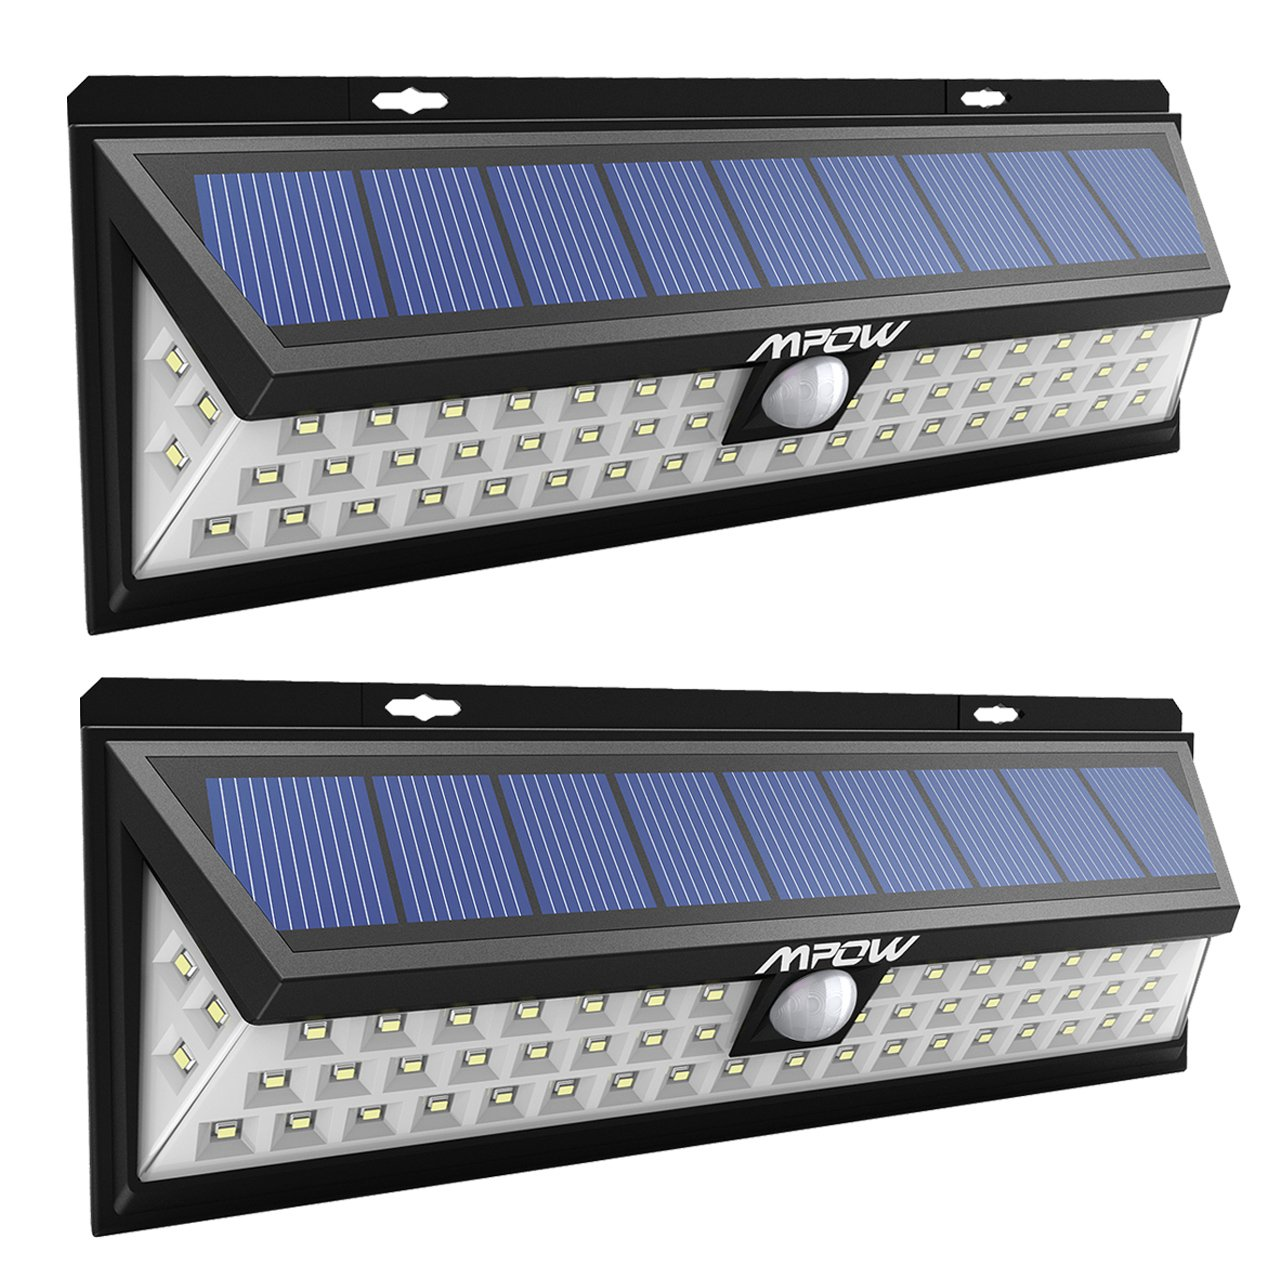 Mpow 54 LED Solar Lights Outdoor, 270 Degree Wide Angle Motion Sensor Solar Lights, Waterproof Security Lights for Patio, Garden, Path, Yard, Driveway Lighting - 2 Pack by Mpow